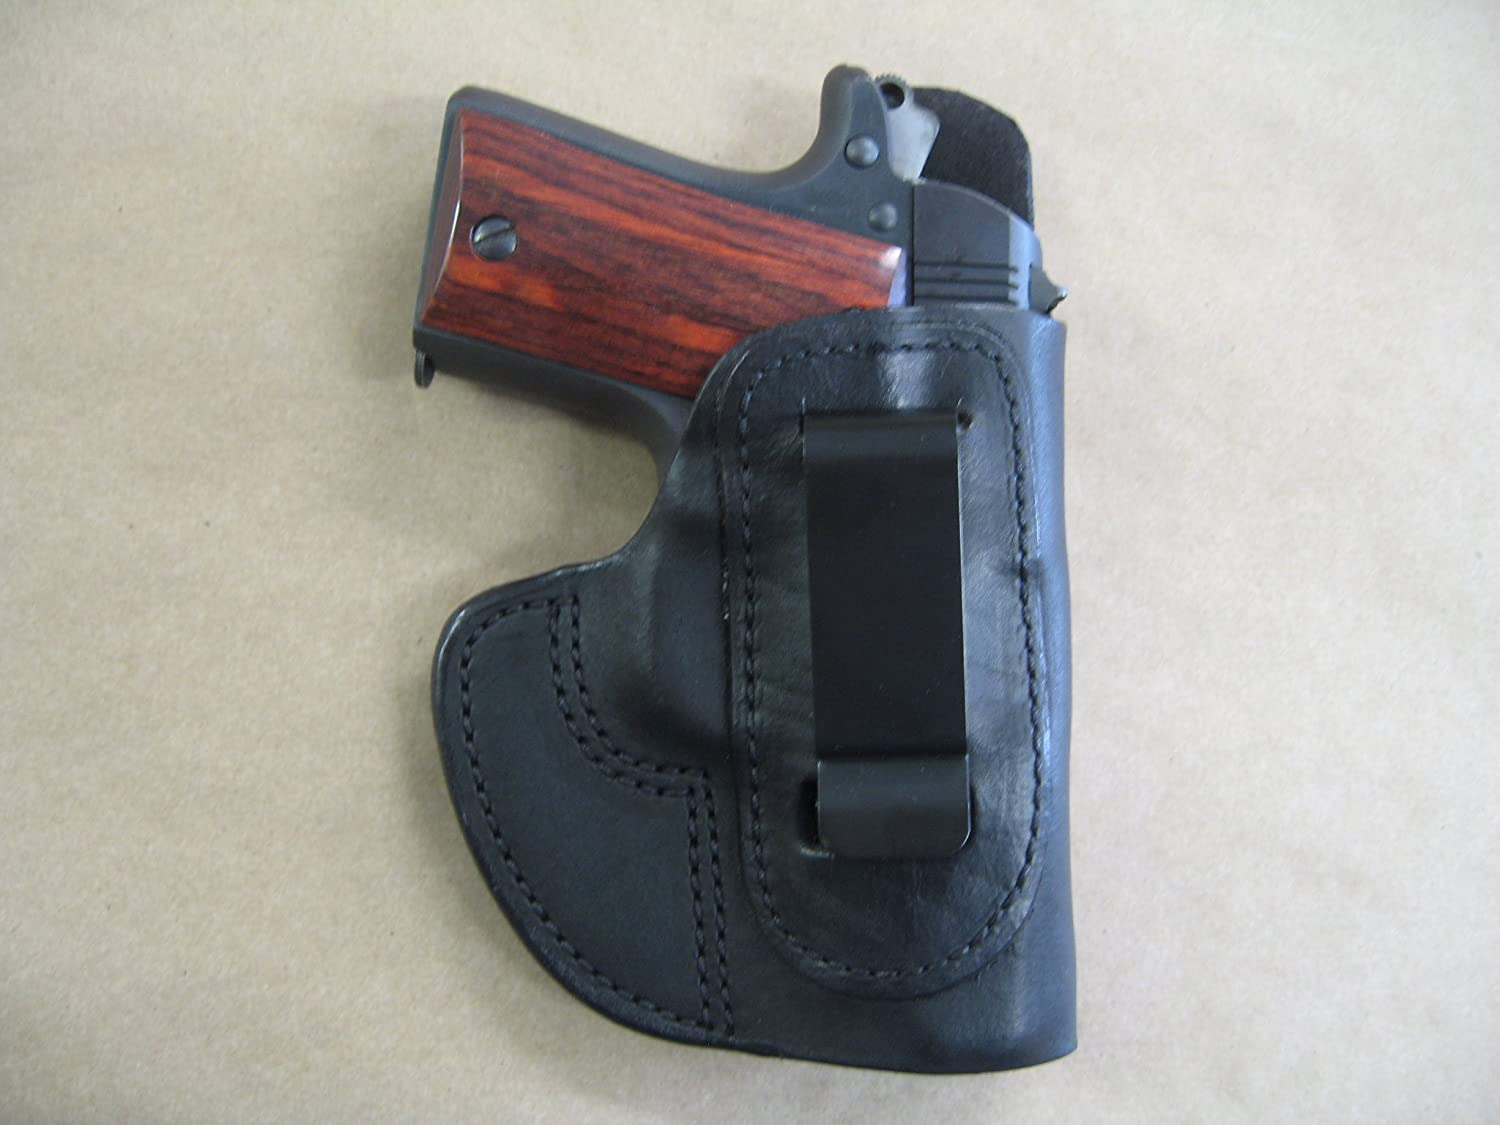 Gun Holster BUY 1 GET 3 FREE Ruger Sub Compact Walter PPK 380 0